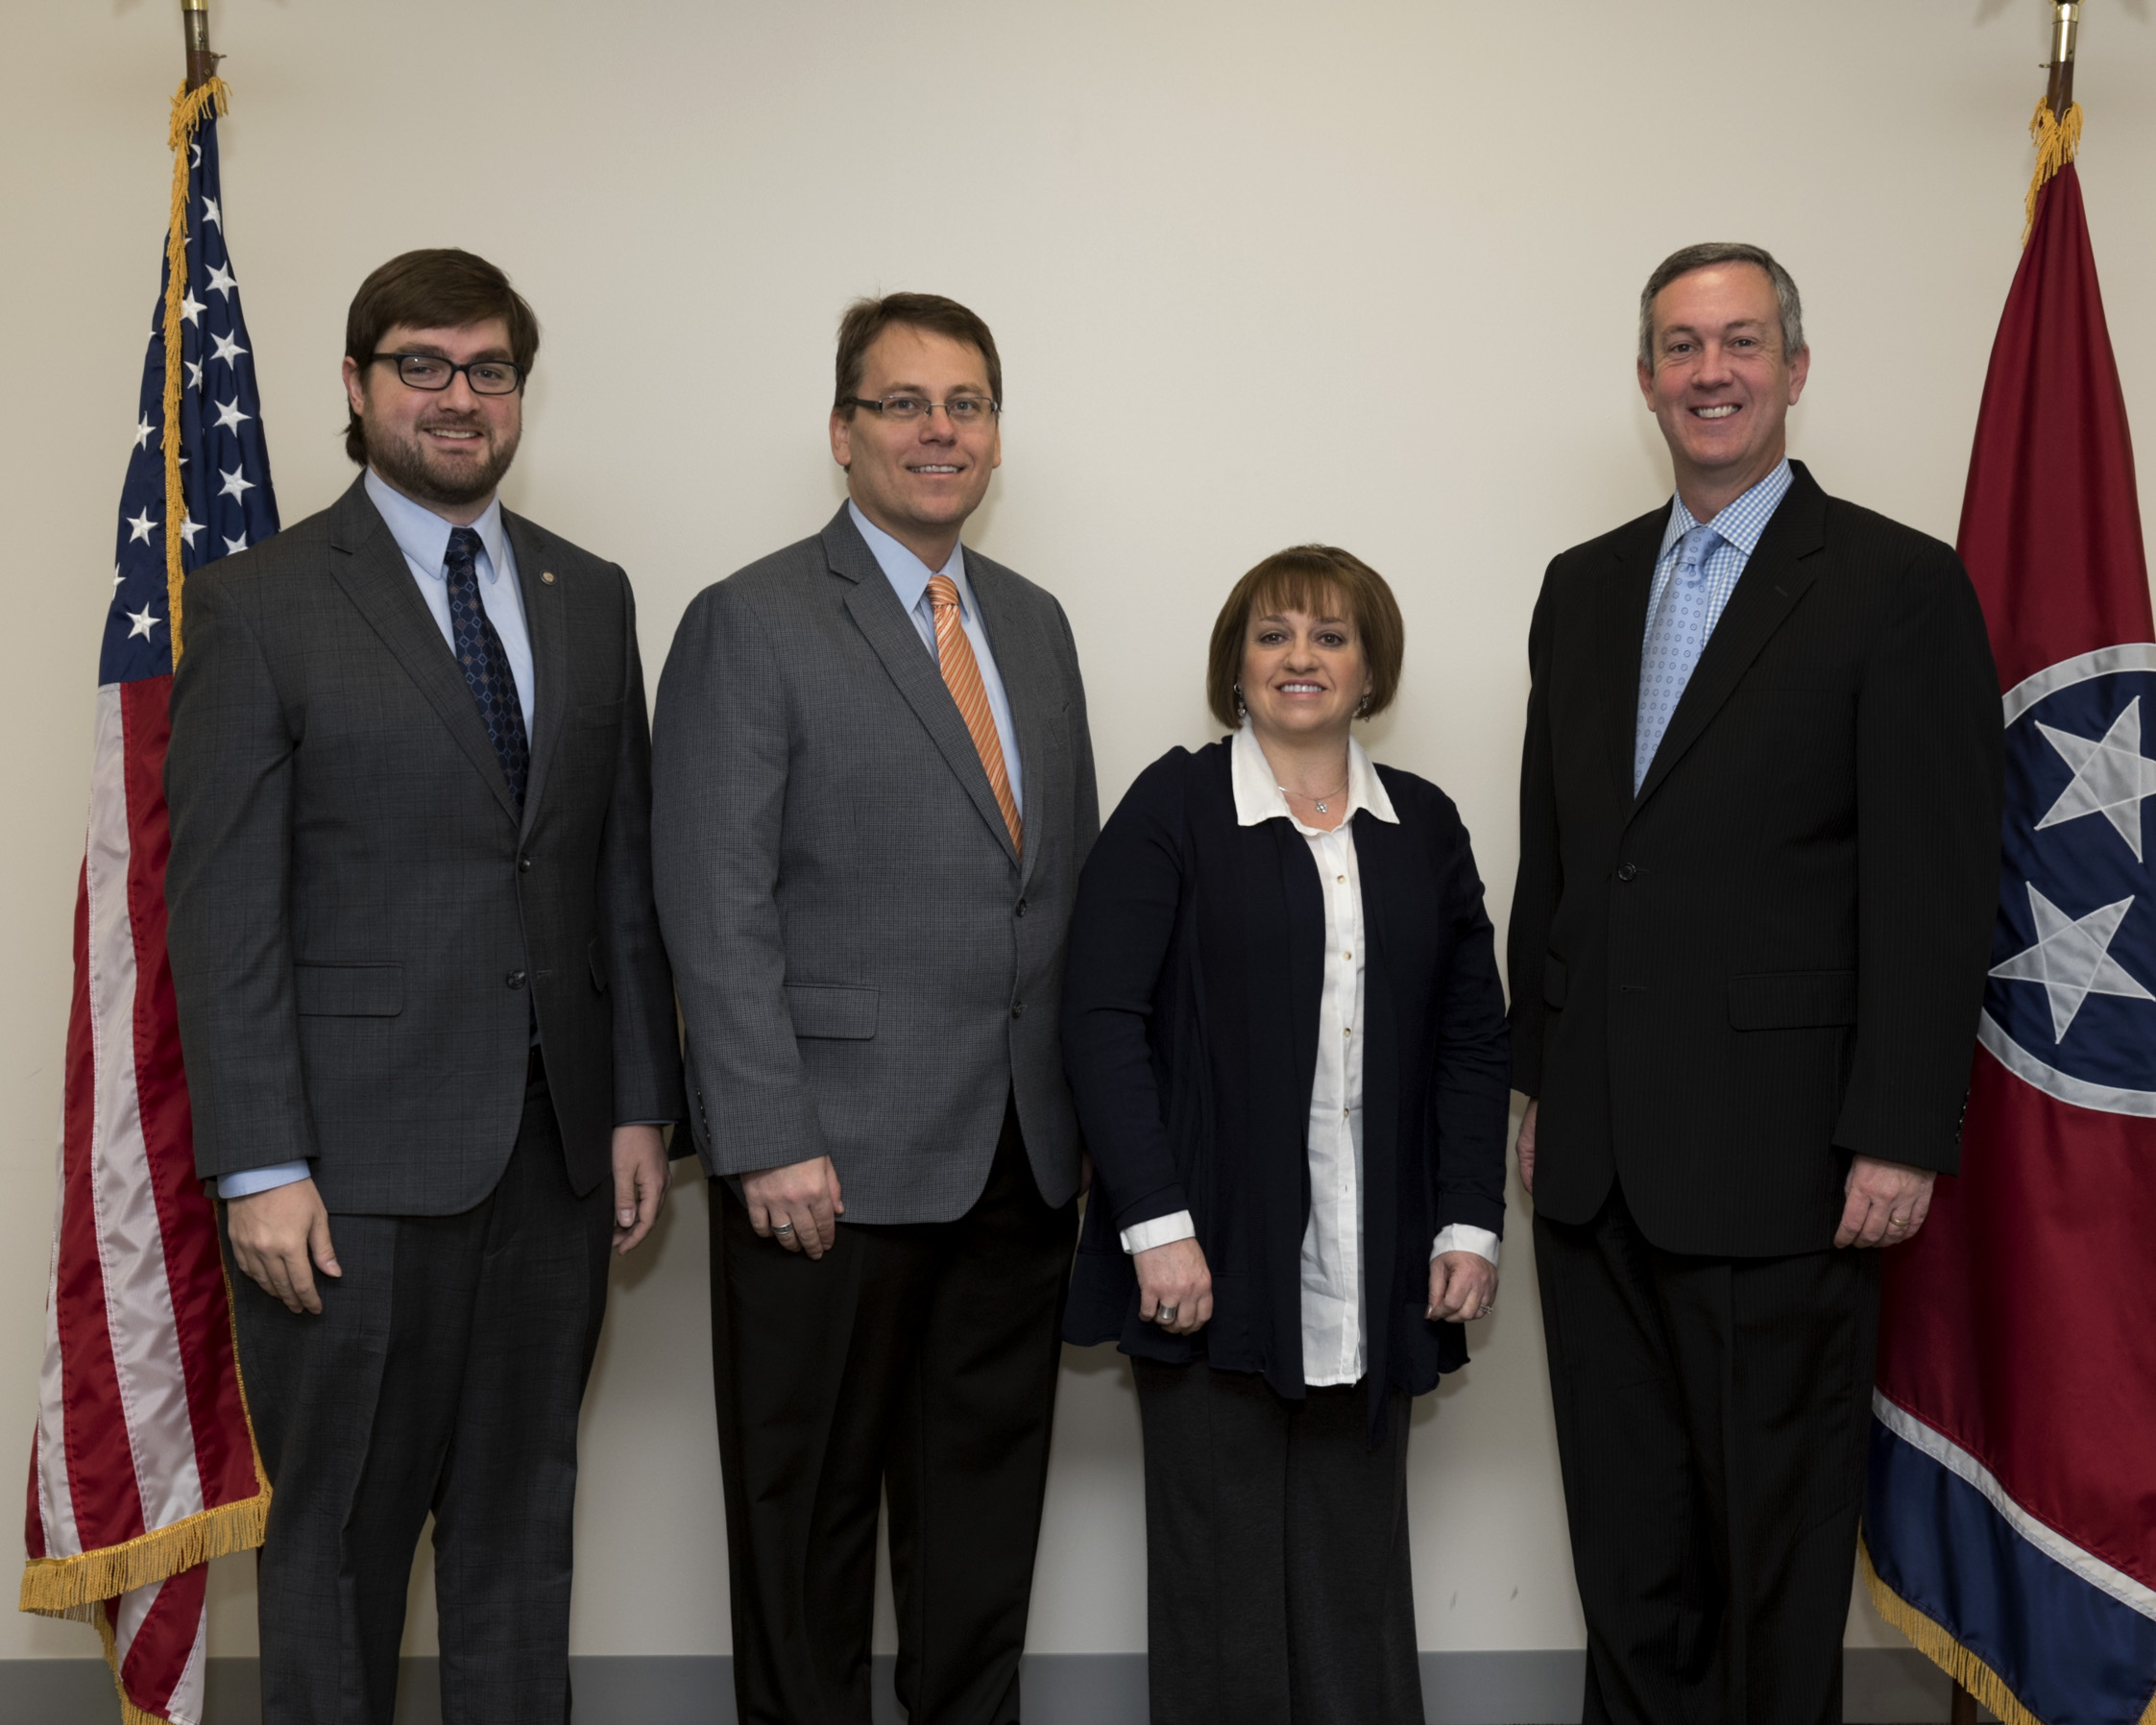 L to R: Elections Attorney Andrew Dodd, Coordinator of Elections Mark Goins, Tipton County Administrator of Elections Cindy Pinner and Secretary Hargett Dec. 20, 2016.